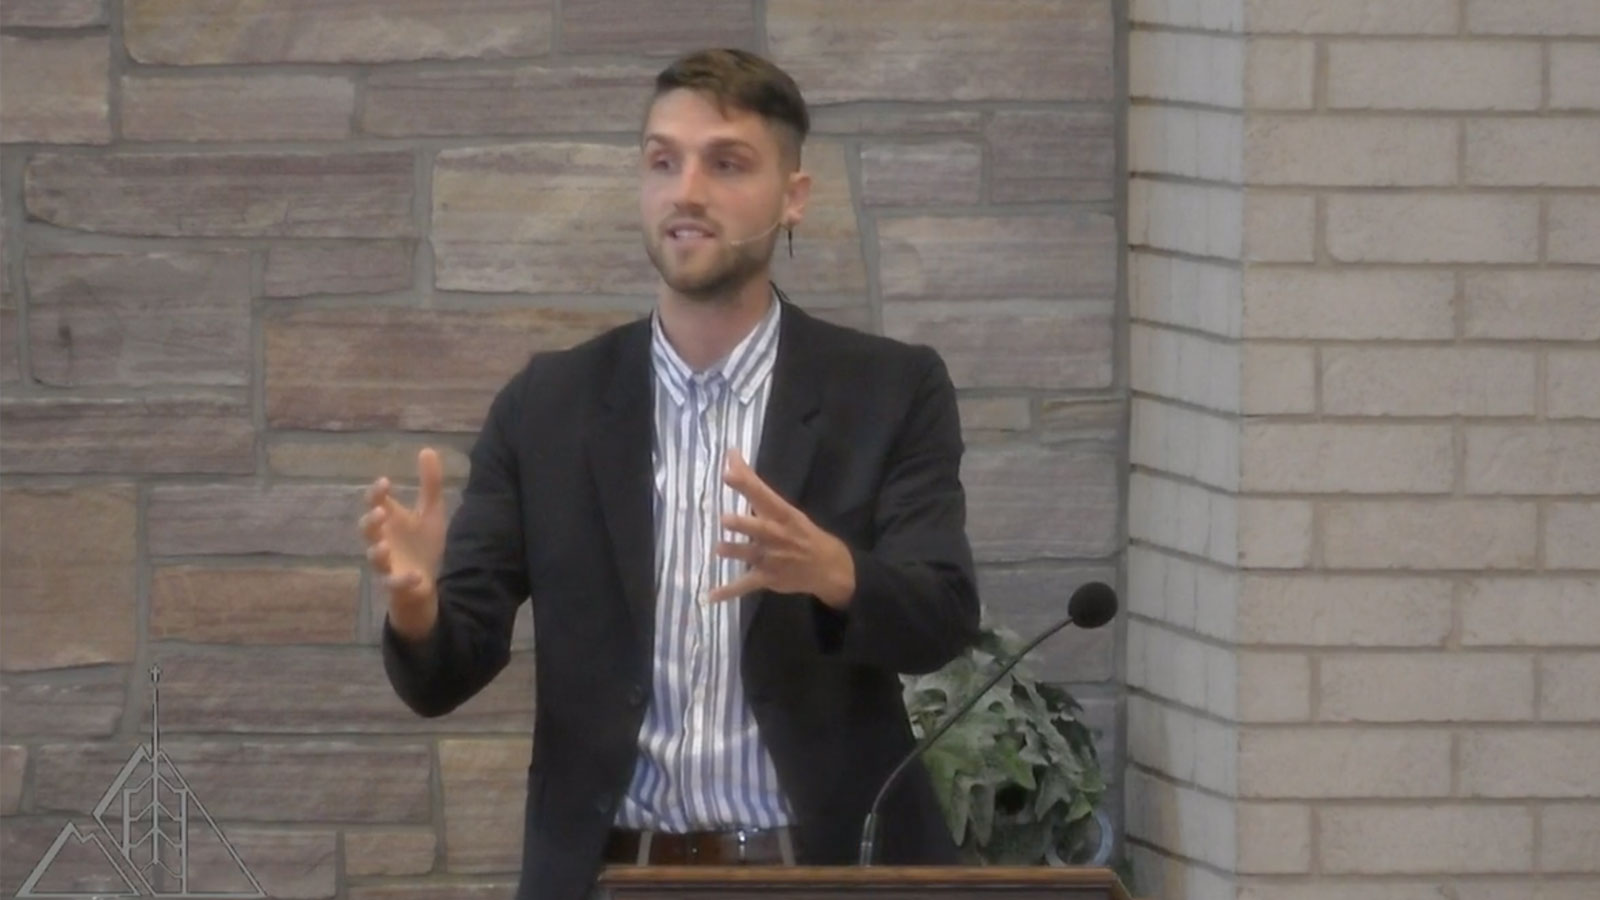 God's Provision, Our Abundance, and Jesus' Call - Guest Pastor: Pastor Zack DyBruyneDeuteronomy 8:1-18